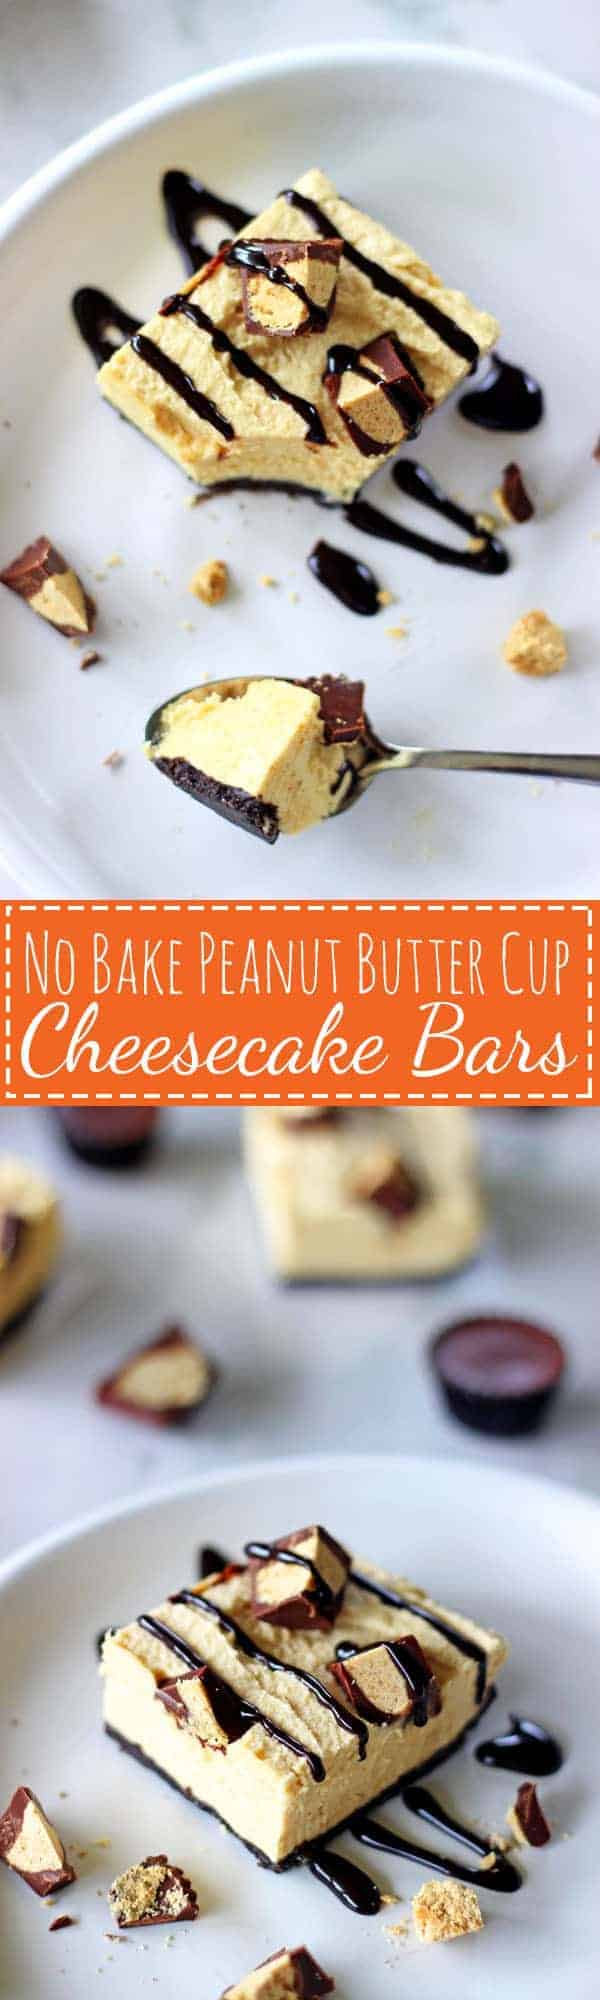 My all time favourite, easy to make dessert - no bake peanut butter cup cheesecake bars. The perfect make ahead dessert for anyone who loves peanut butter! | thekiwicountrygirl.com